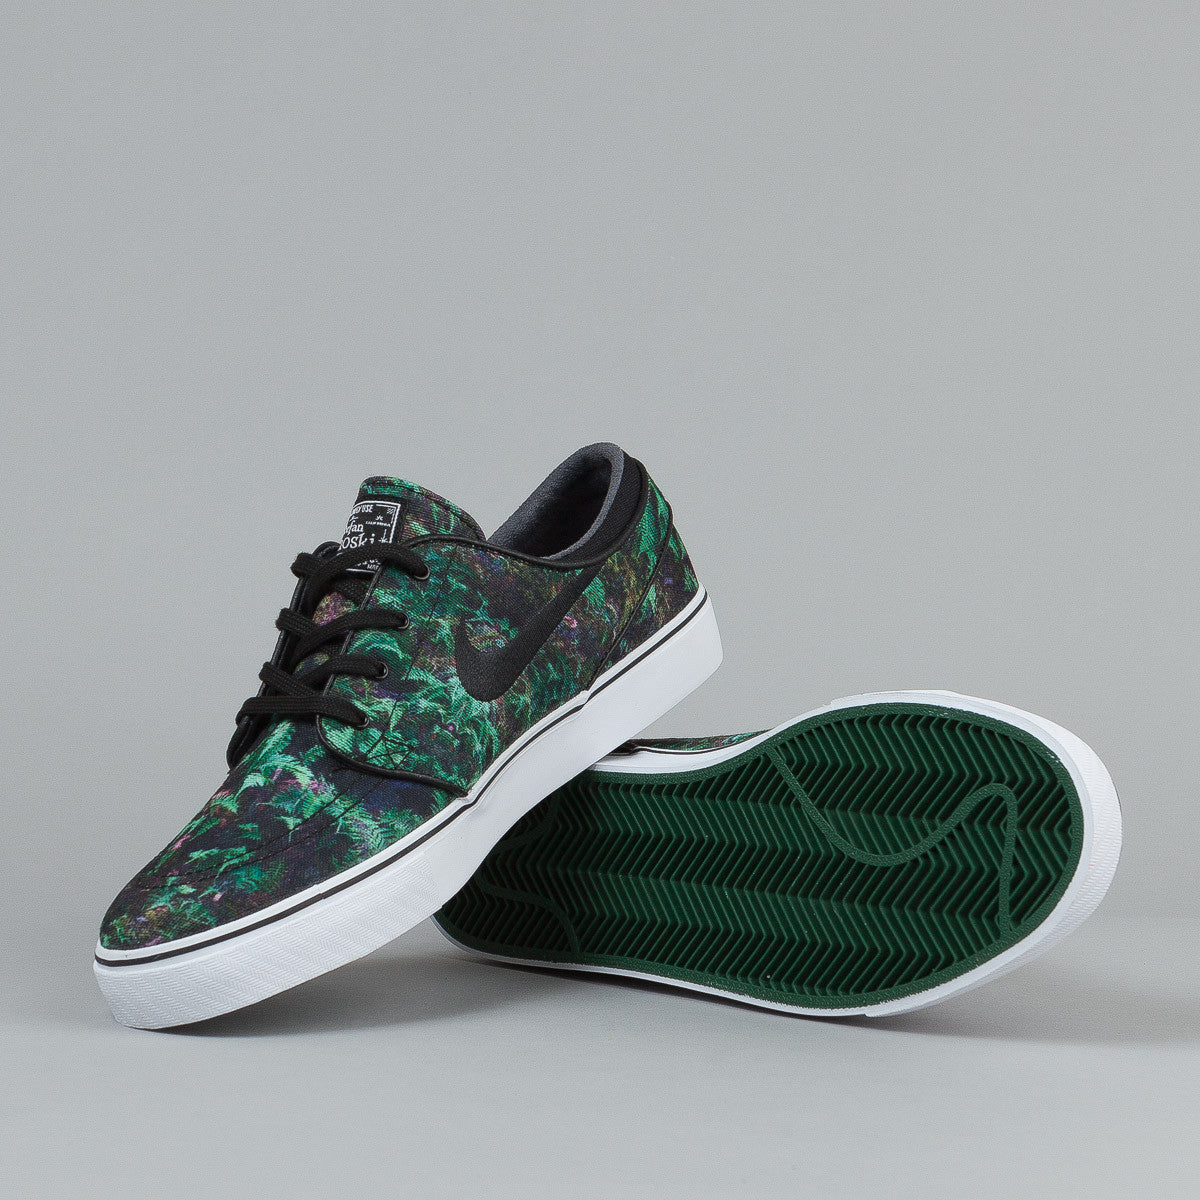 Nike SB Stefan Janoski CNVS PRM Shoes - Gorge Green / Black / White